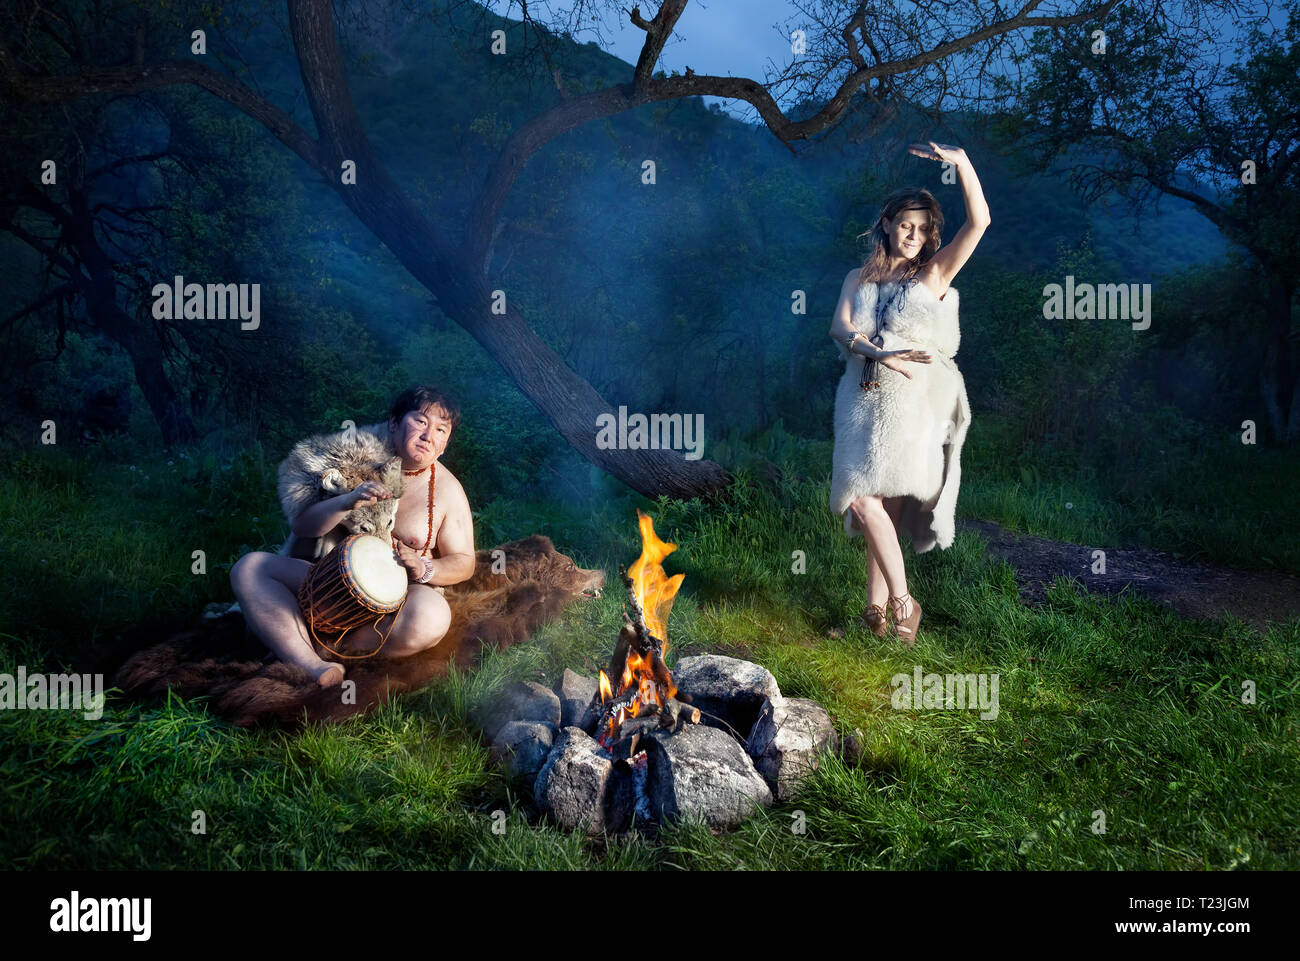 Caveman dressed in wolf skin playing drum and cave woman dancing near bonfire in the forest - Stock Image